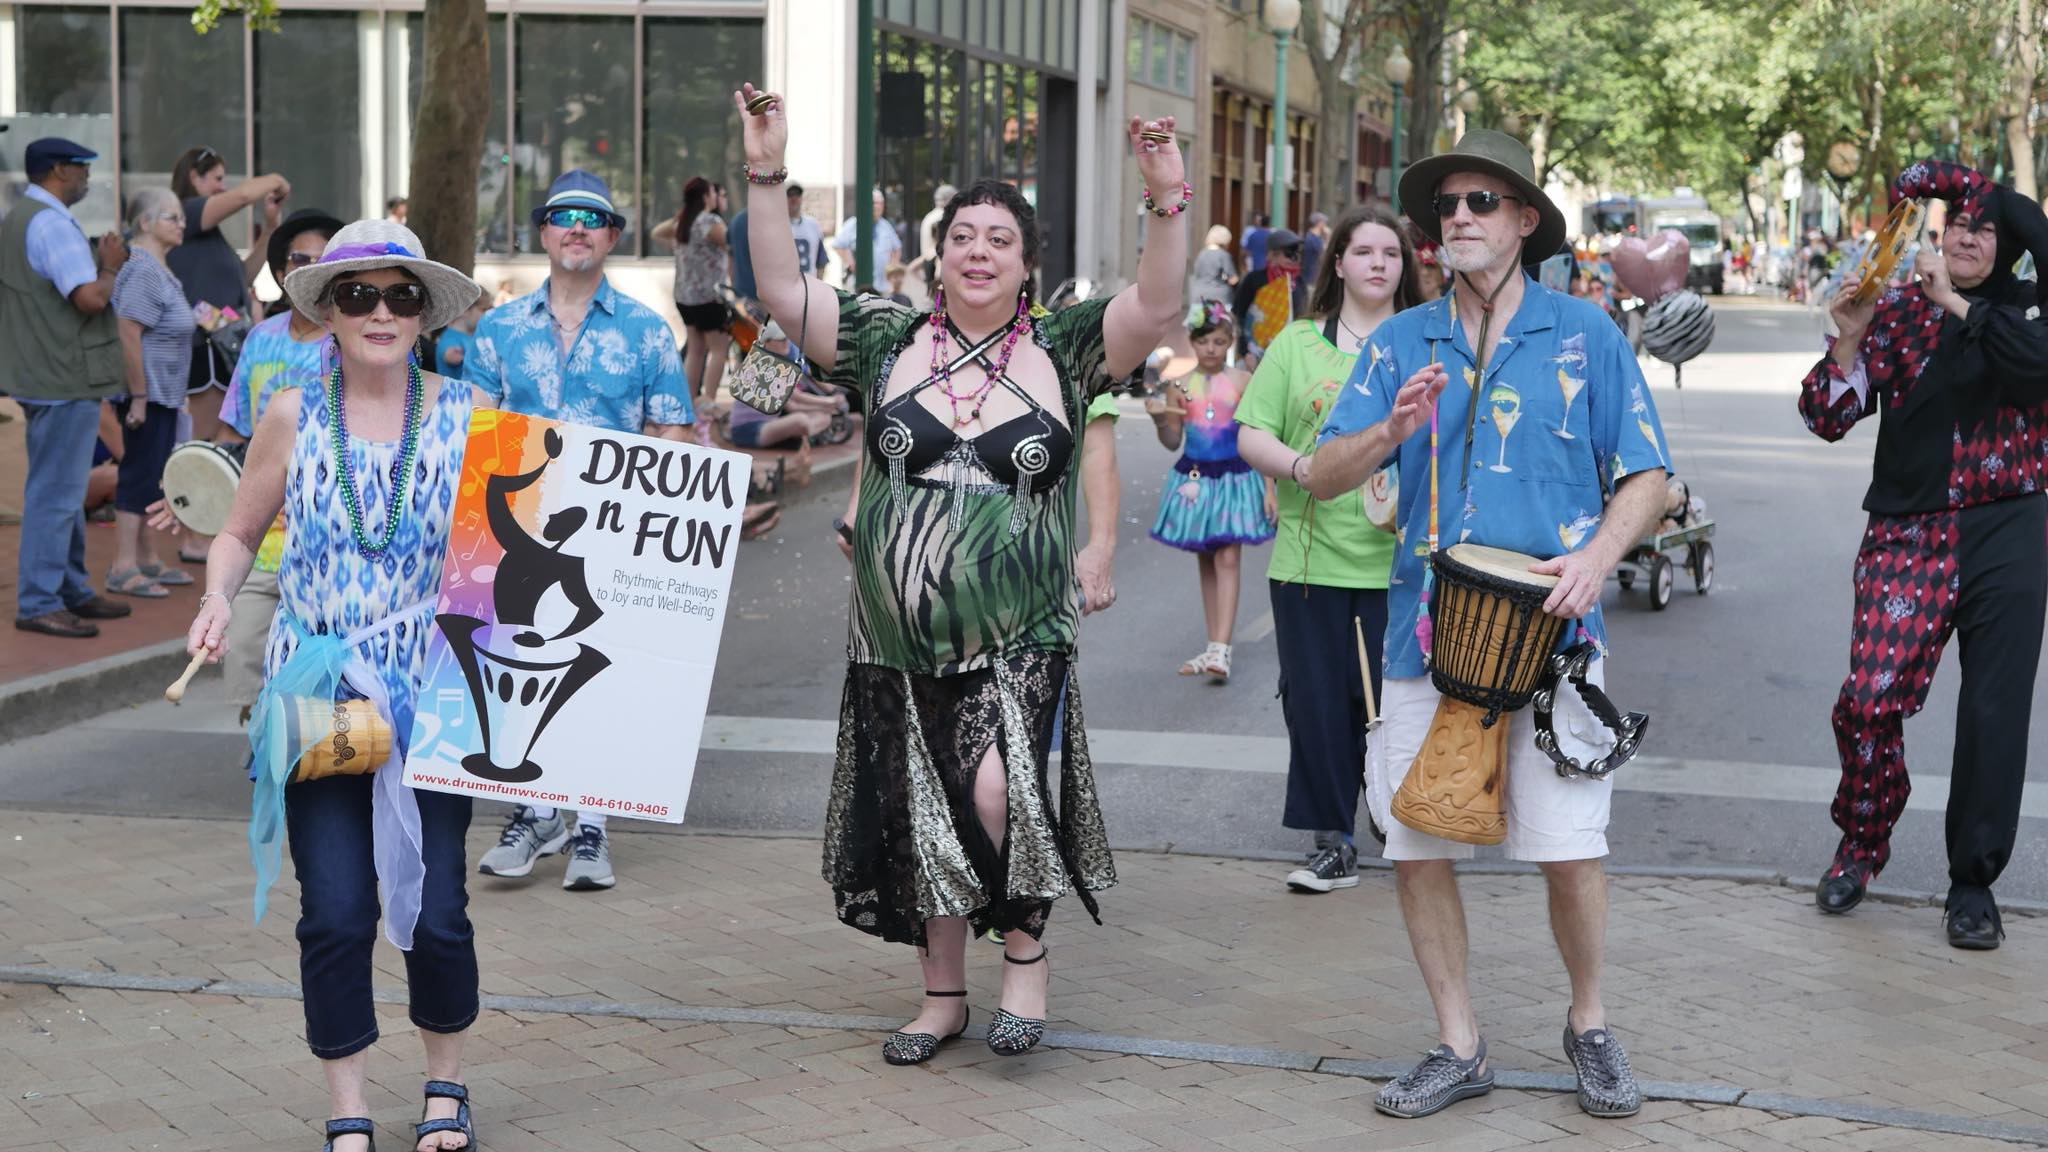 """Drum 'n Fun"" Group ""FestivAll Art Parade 2018"", Charleston, WV"